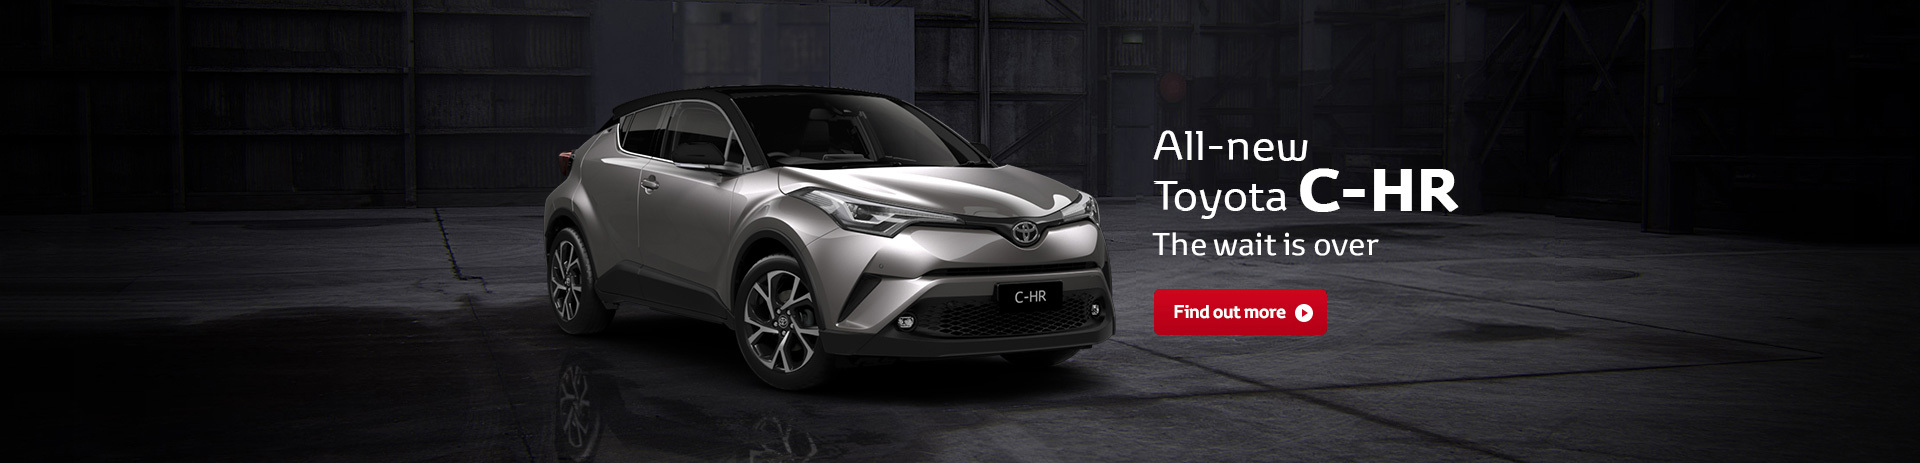 All-new Toyota C-HR